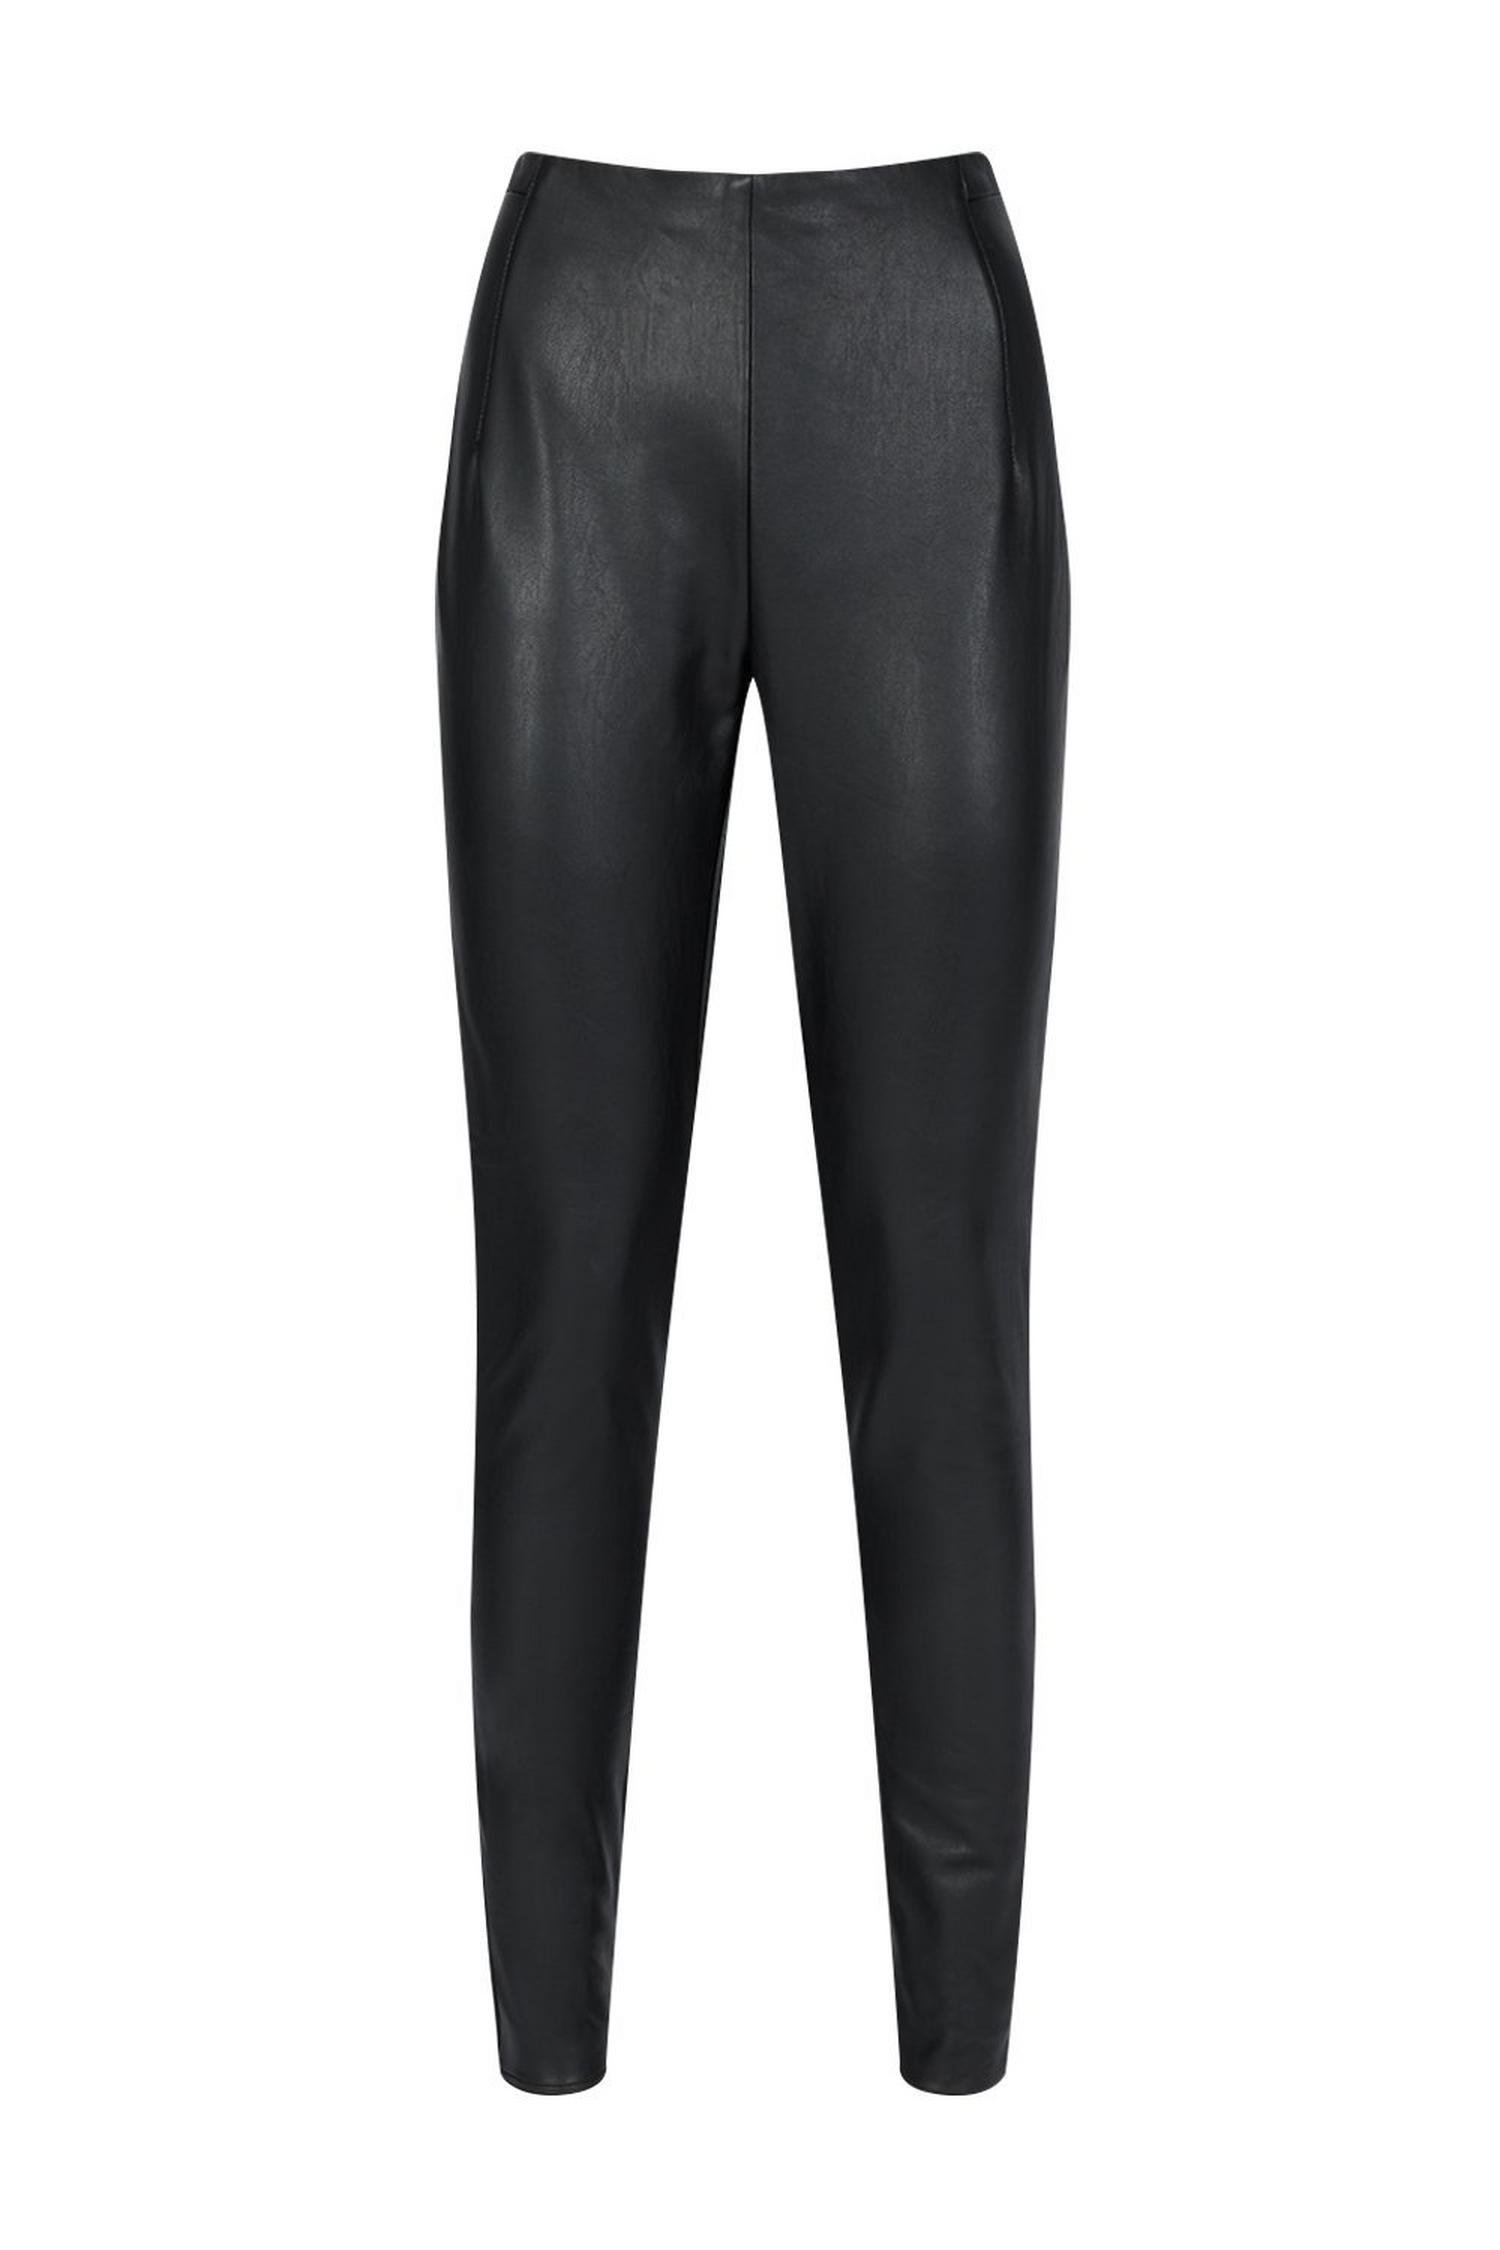 105 Black Faux-Leather Legging image number 4